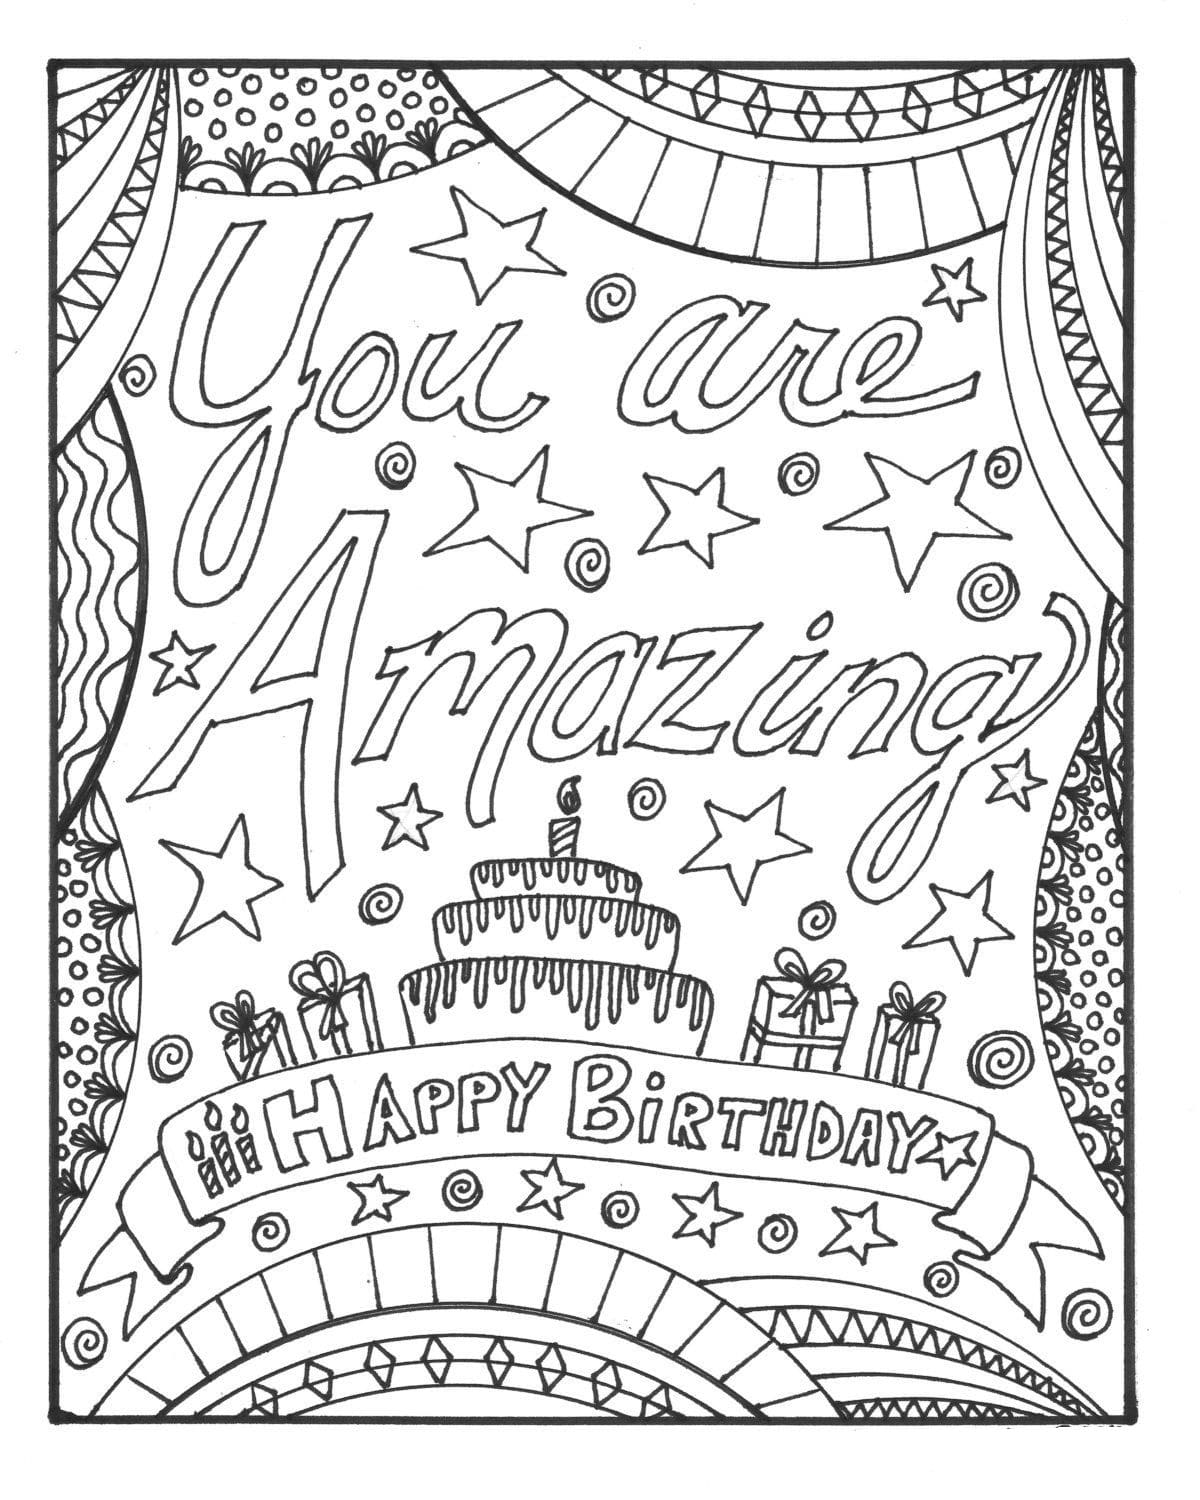 birthday cards for coloring fun learn free worksheets for kid free happy birthday birthday for coloring cards